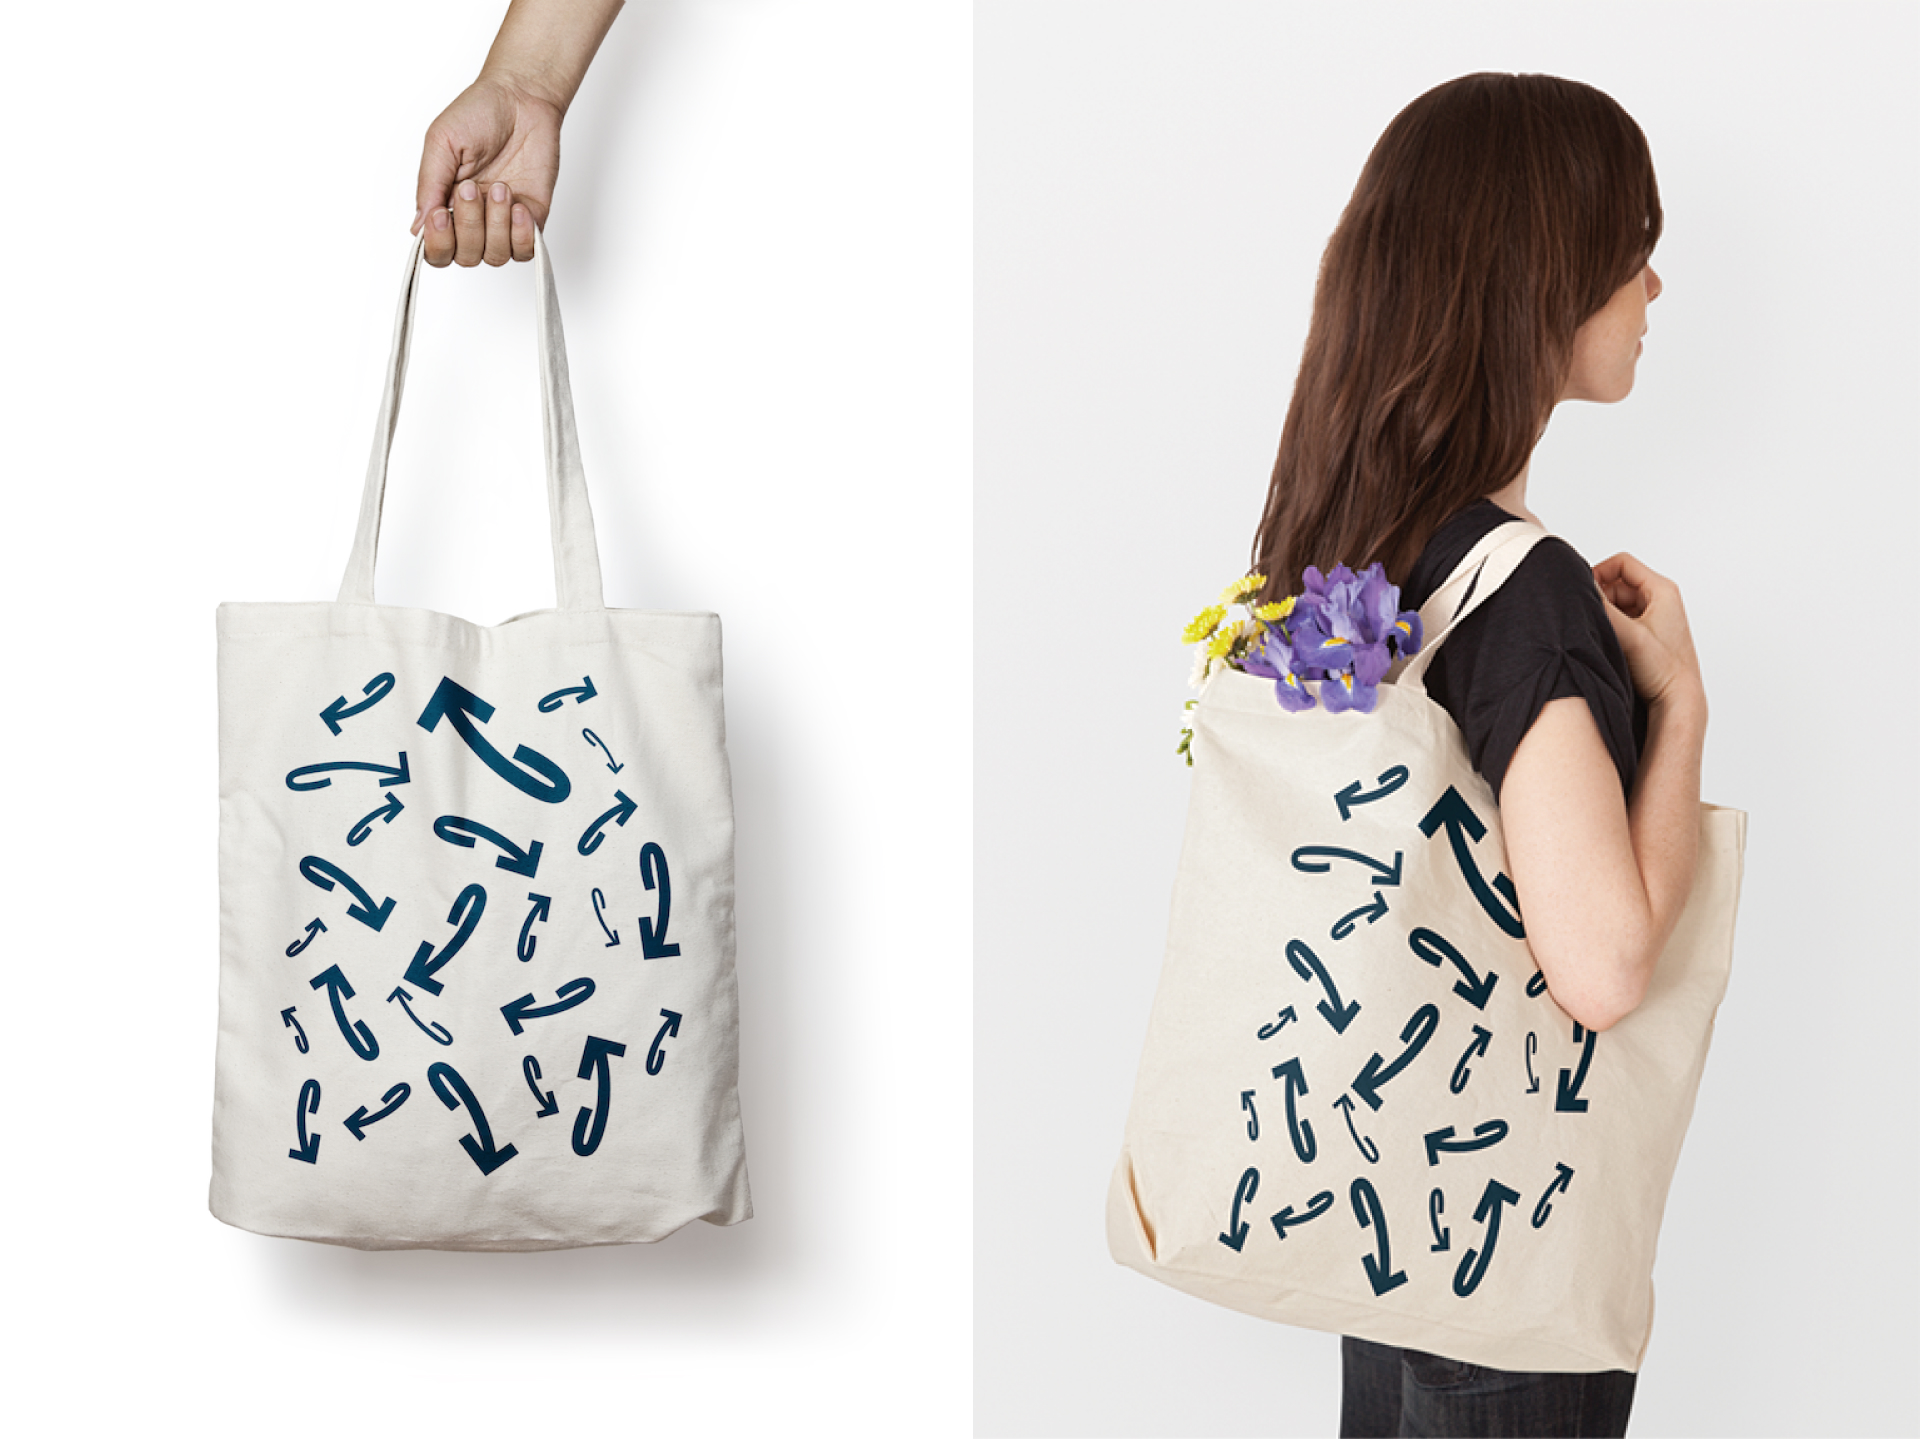 Arm holding tote bag and woman wearing tote bag on her shoulder